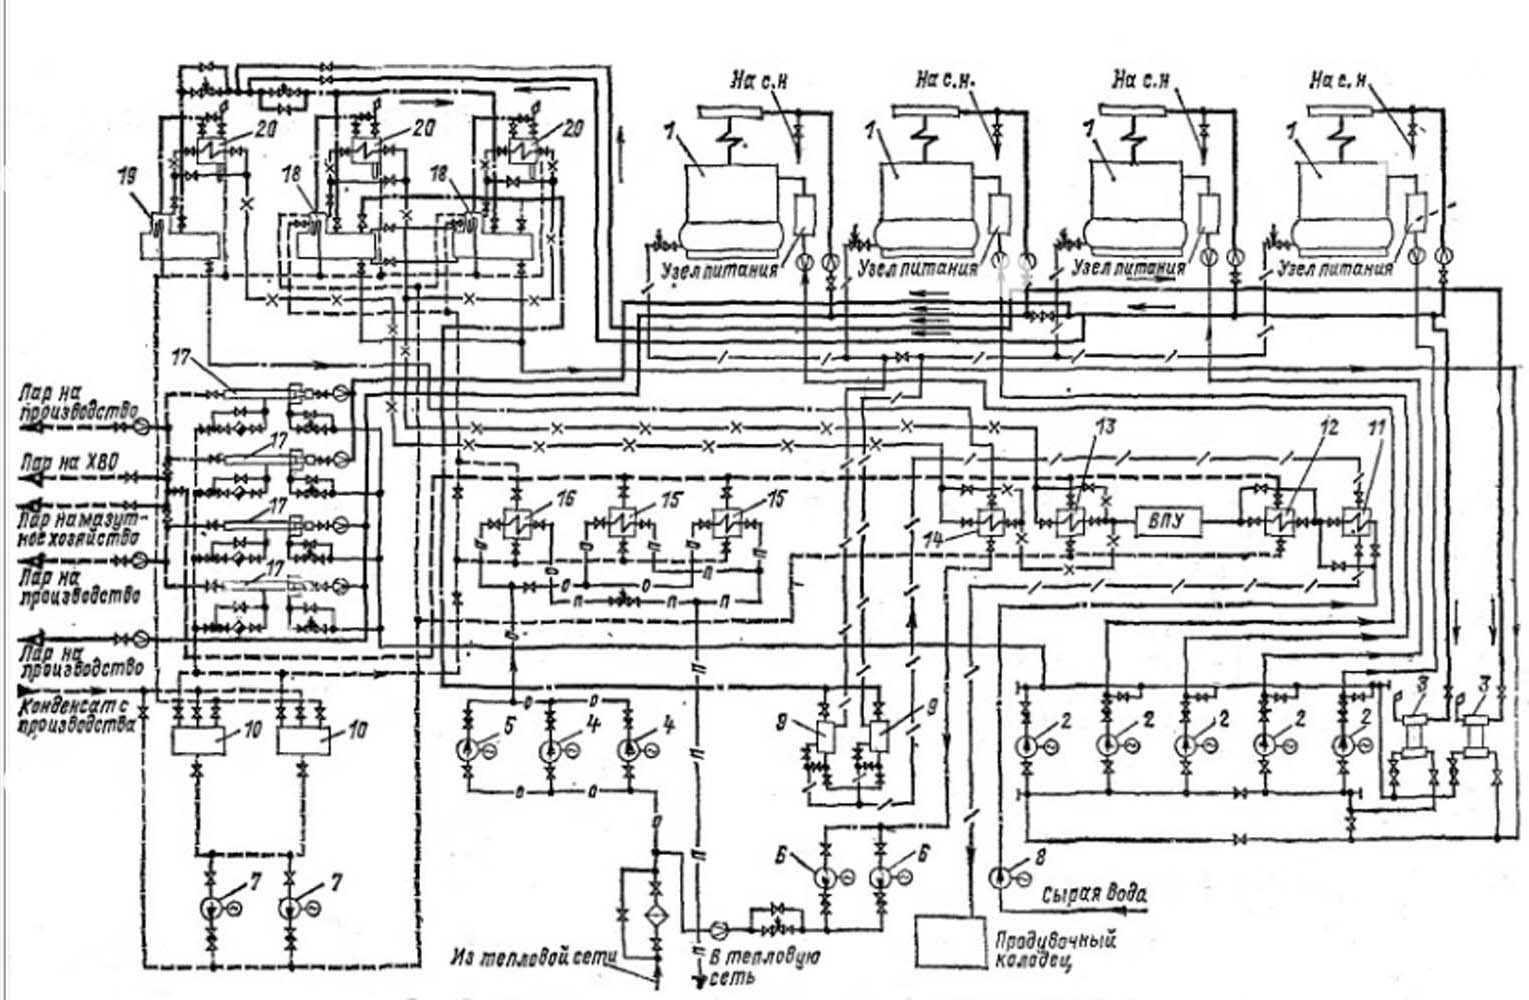 burnham steam boiler piping diagram burnham image similiar steam boiler diagrams keywords on burnham steam boiler piping diagram